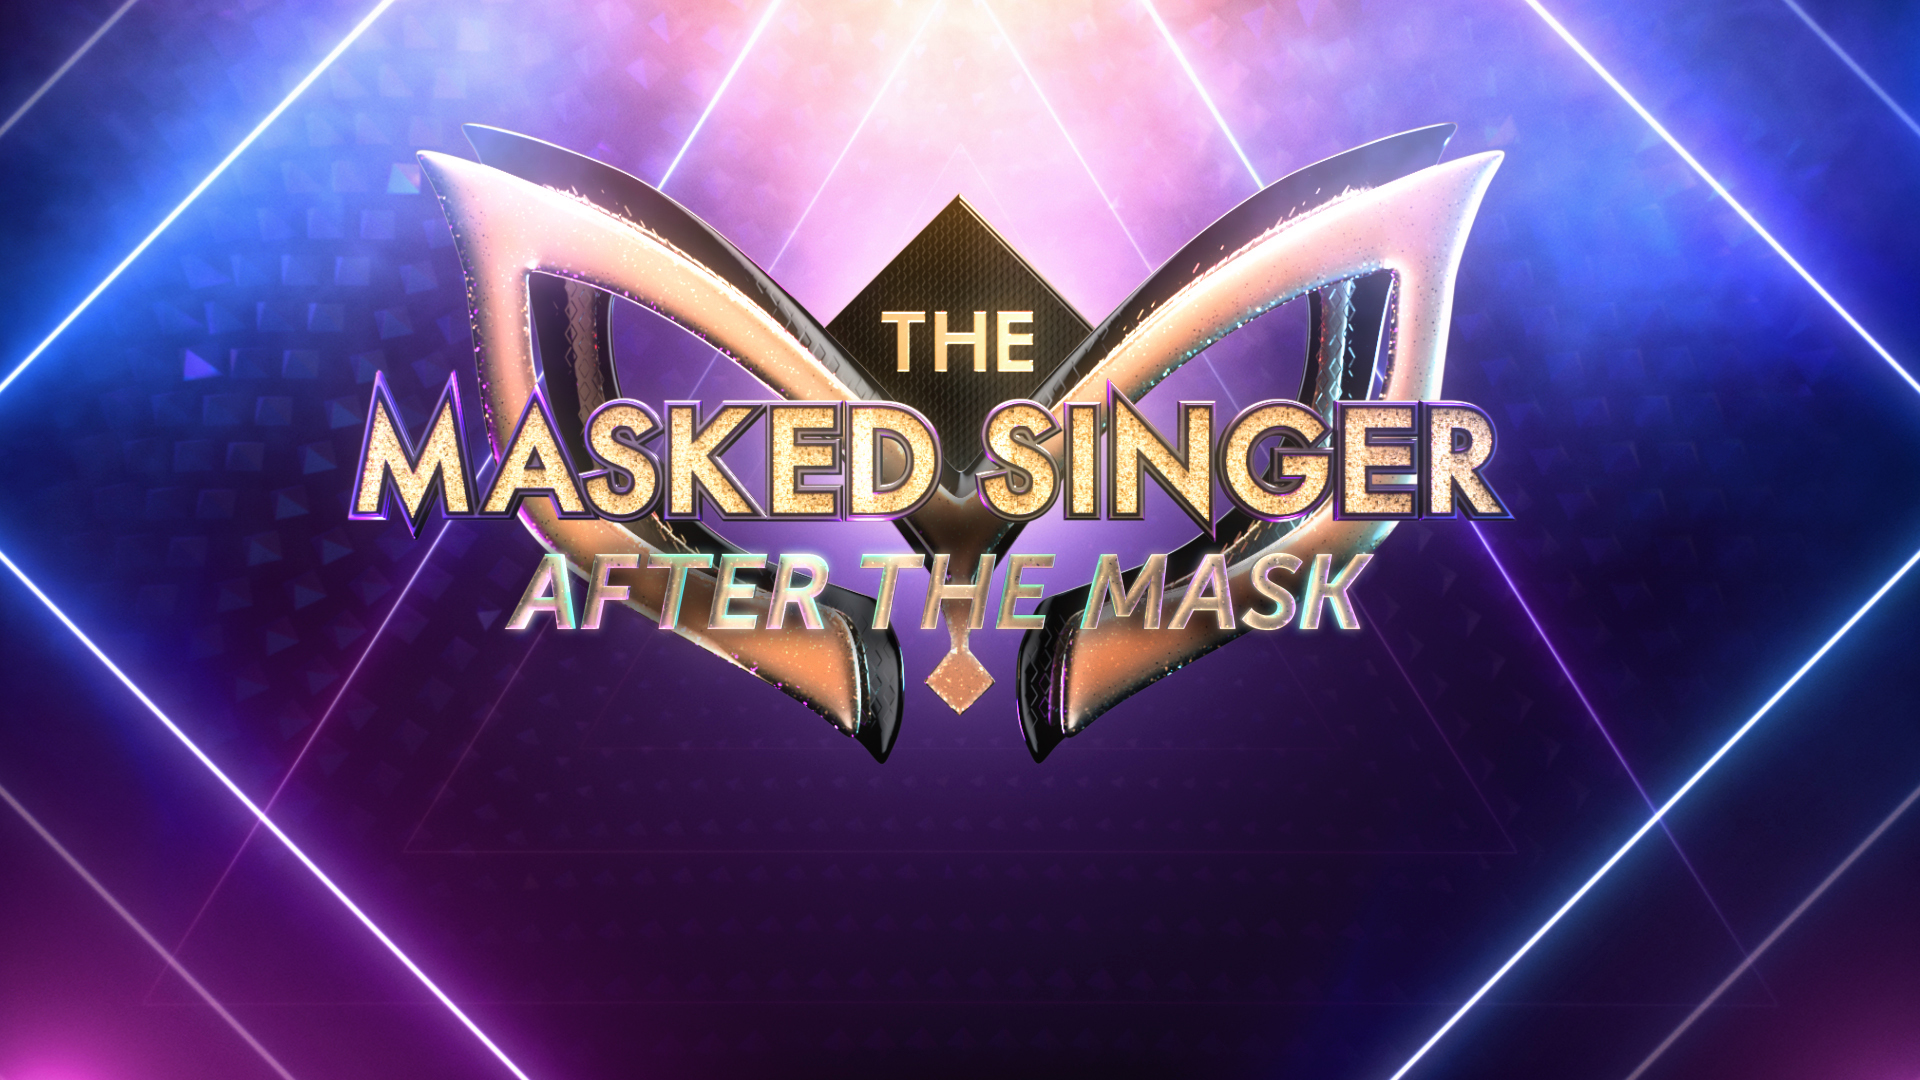 THE MASKED SINGER AFTER THE MASK